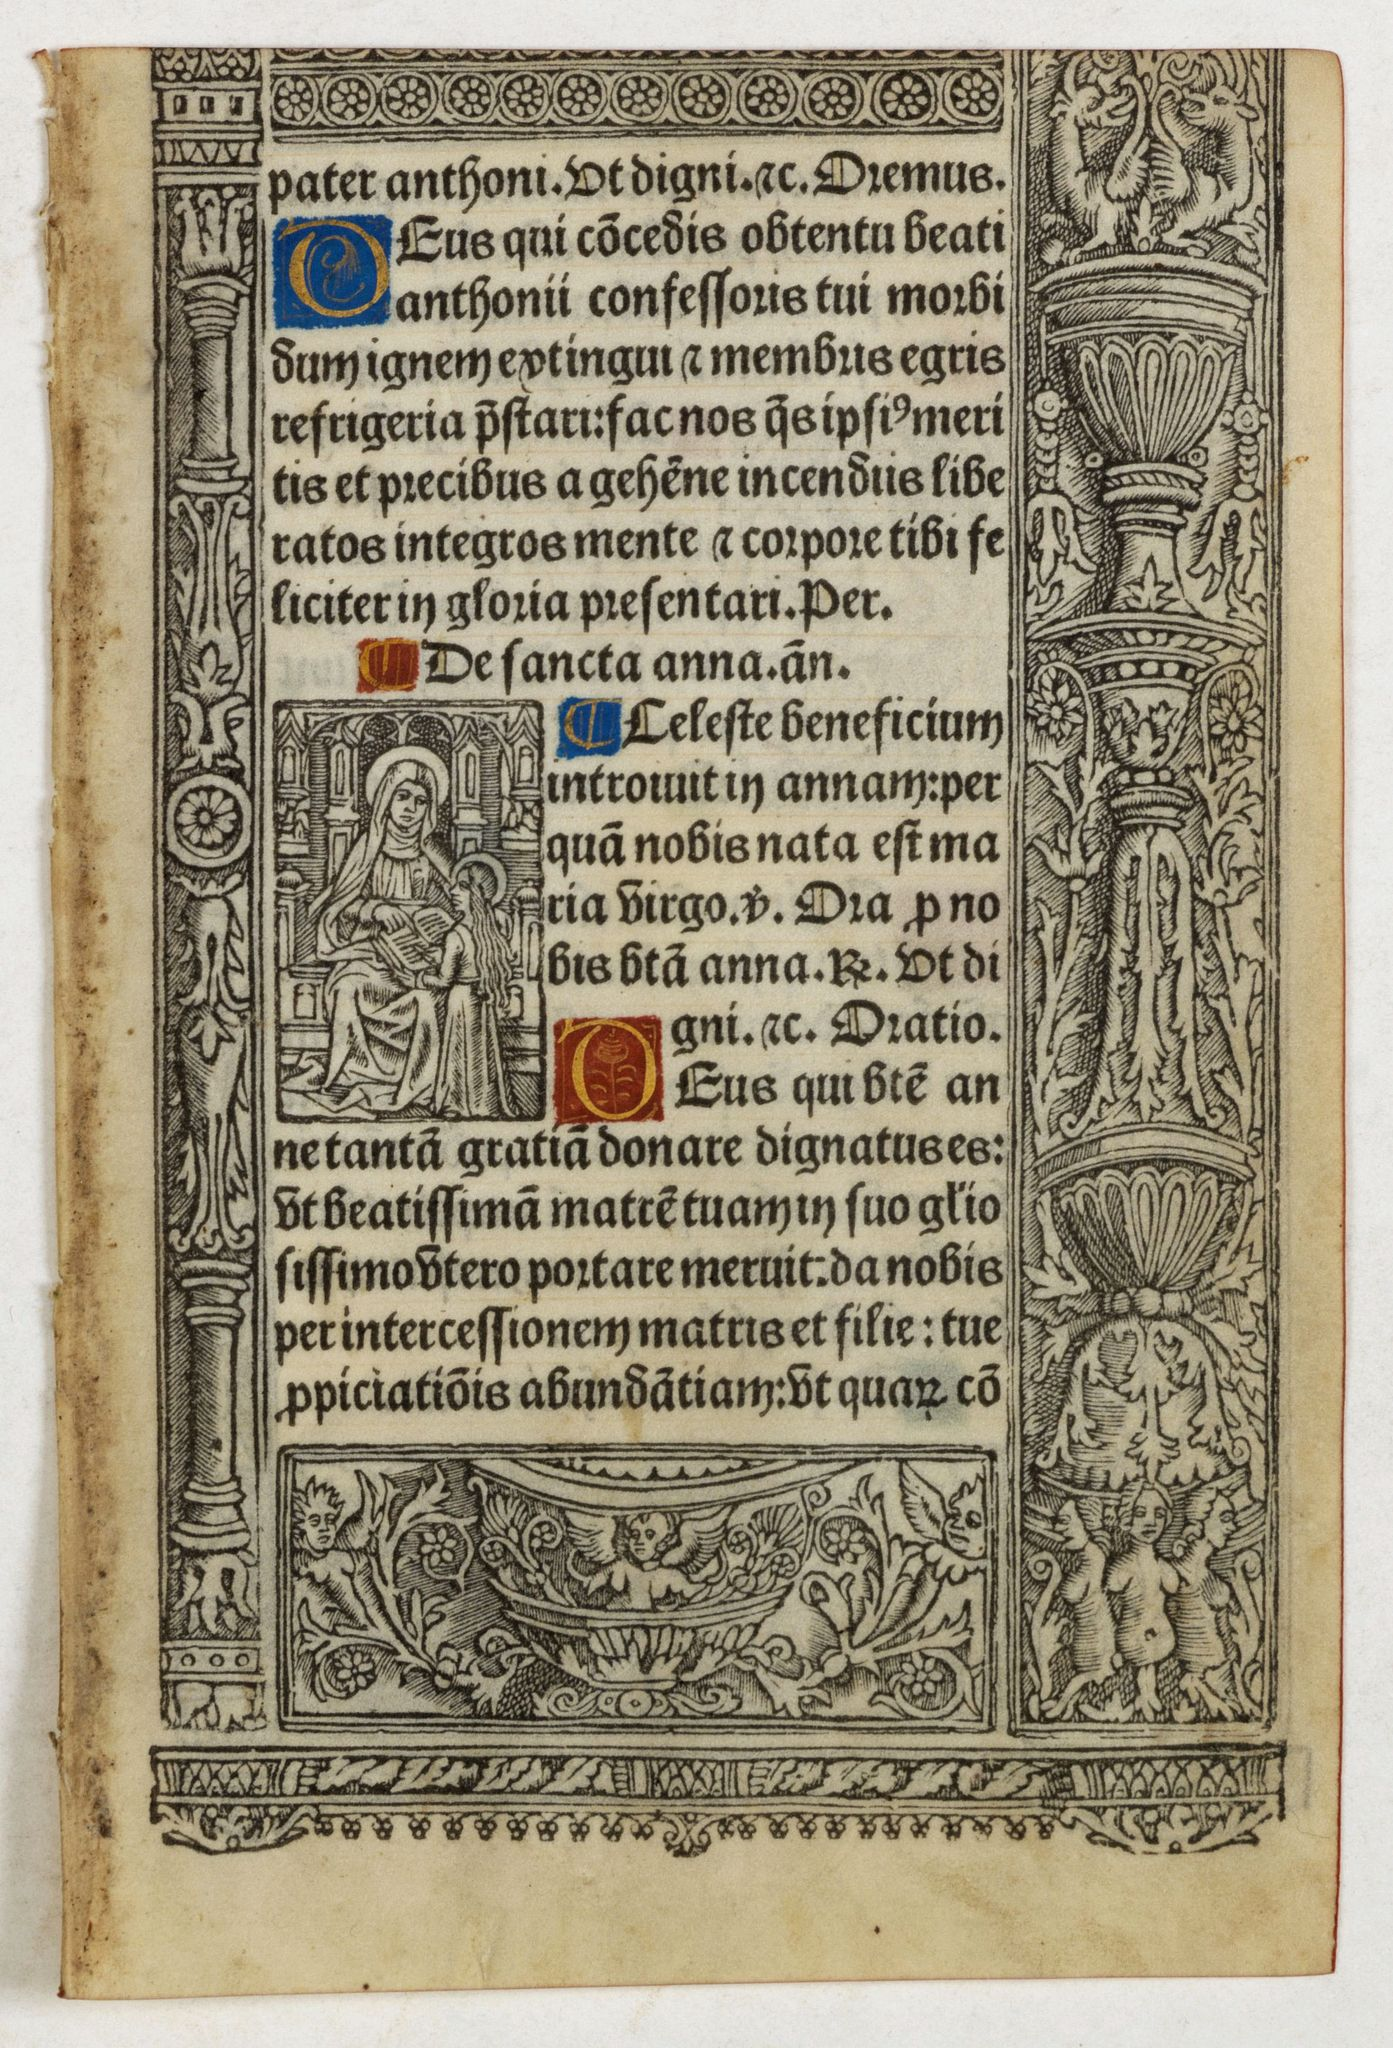 BOOK OF HOURS -  A printed leaf from a Book of Hours.